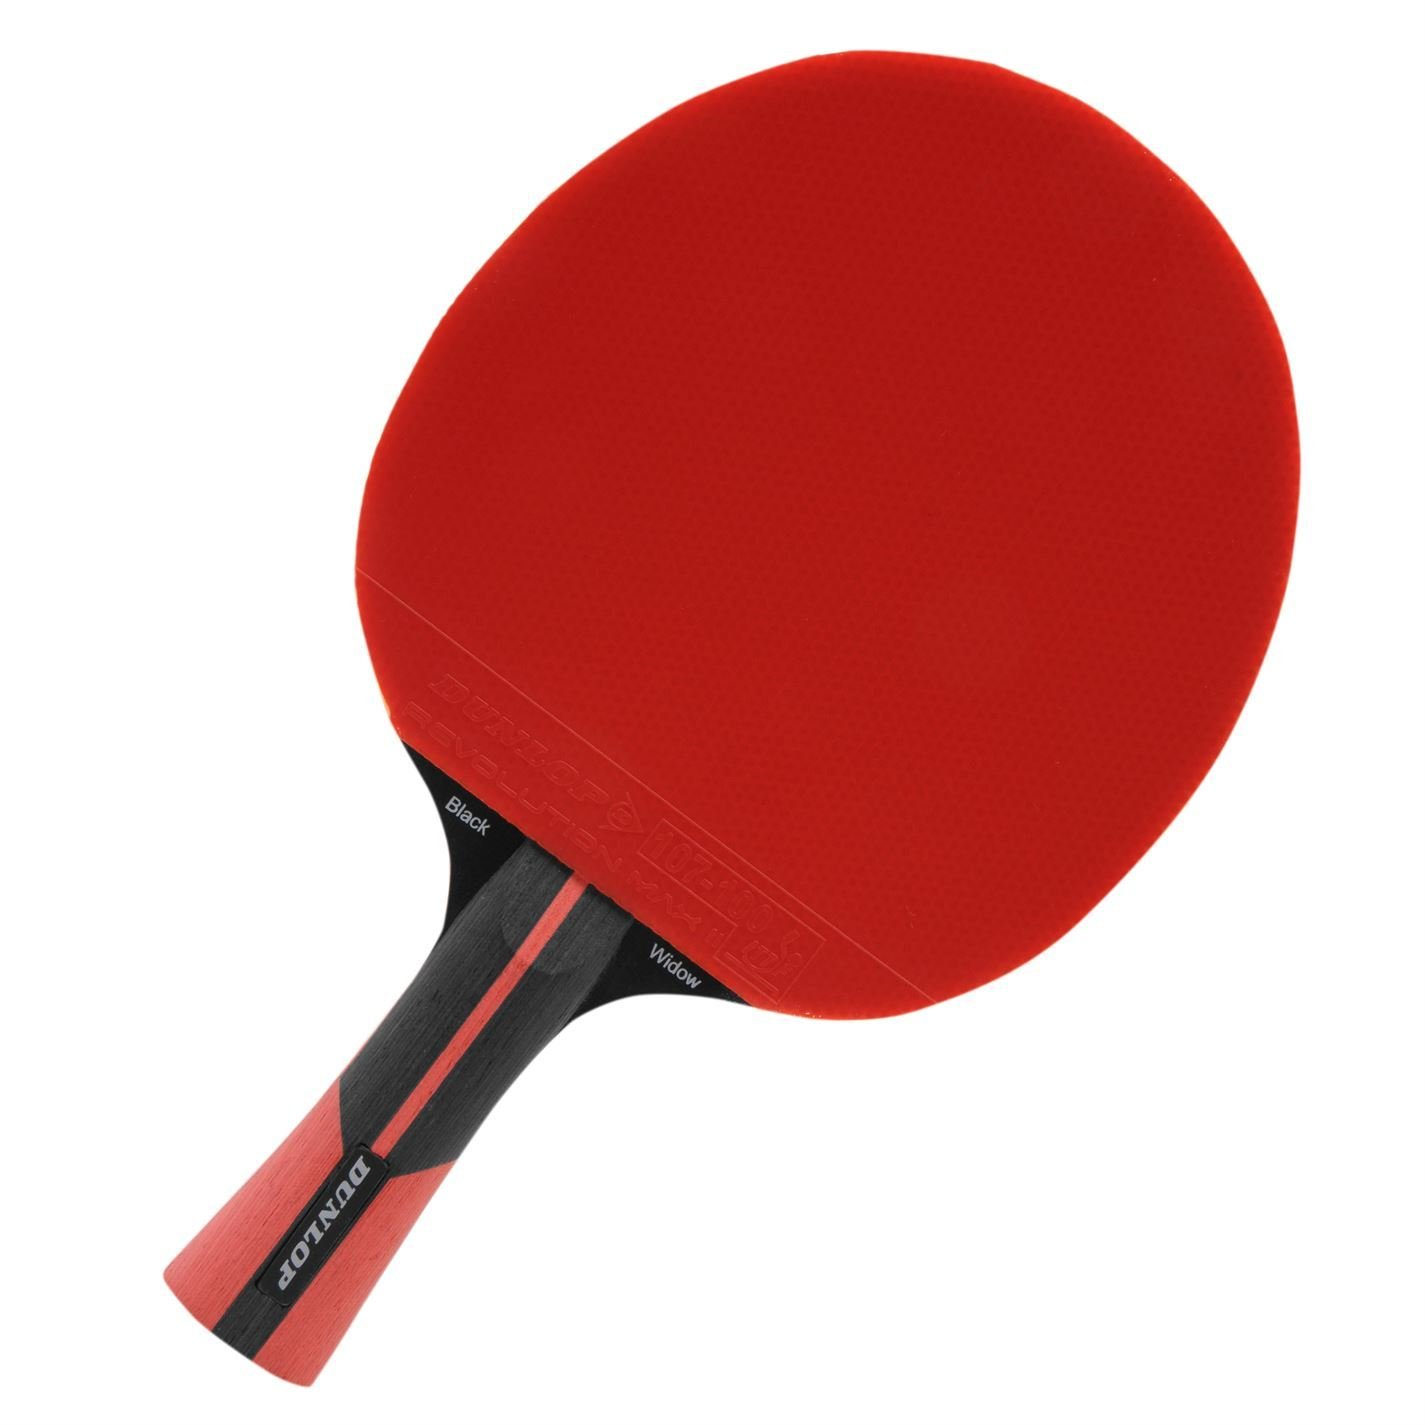 table tennis bats. dunlop rev 4500 tt bat table tennis training sport accessories: amazon.co.uk: sports \u0026 outdoors bats t